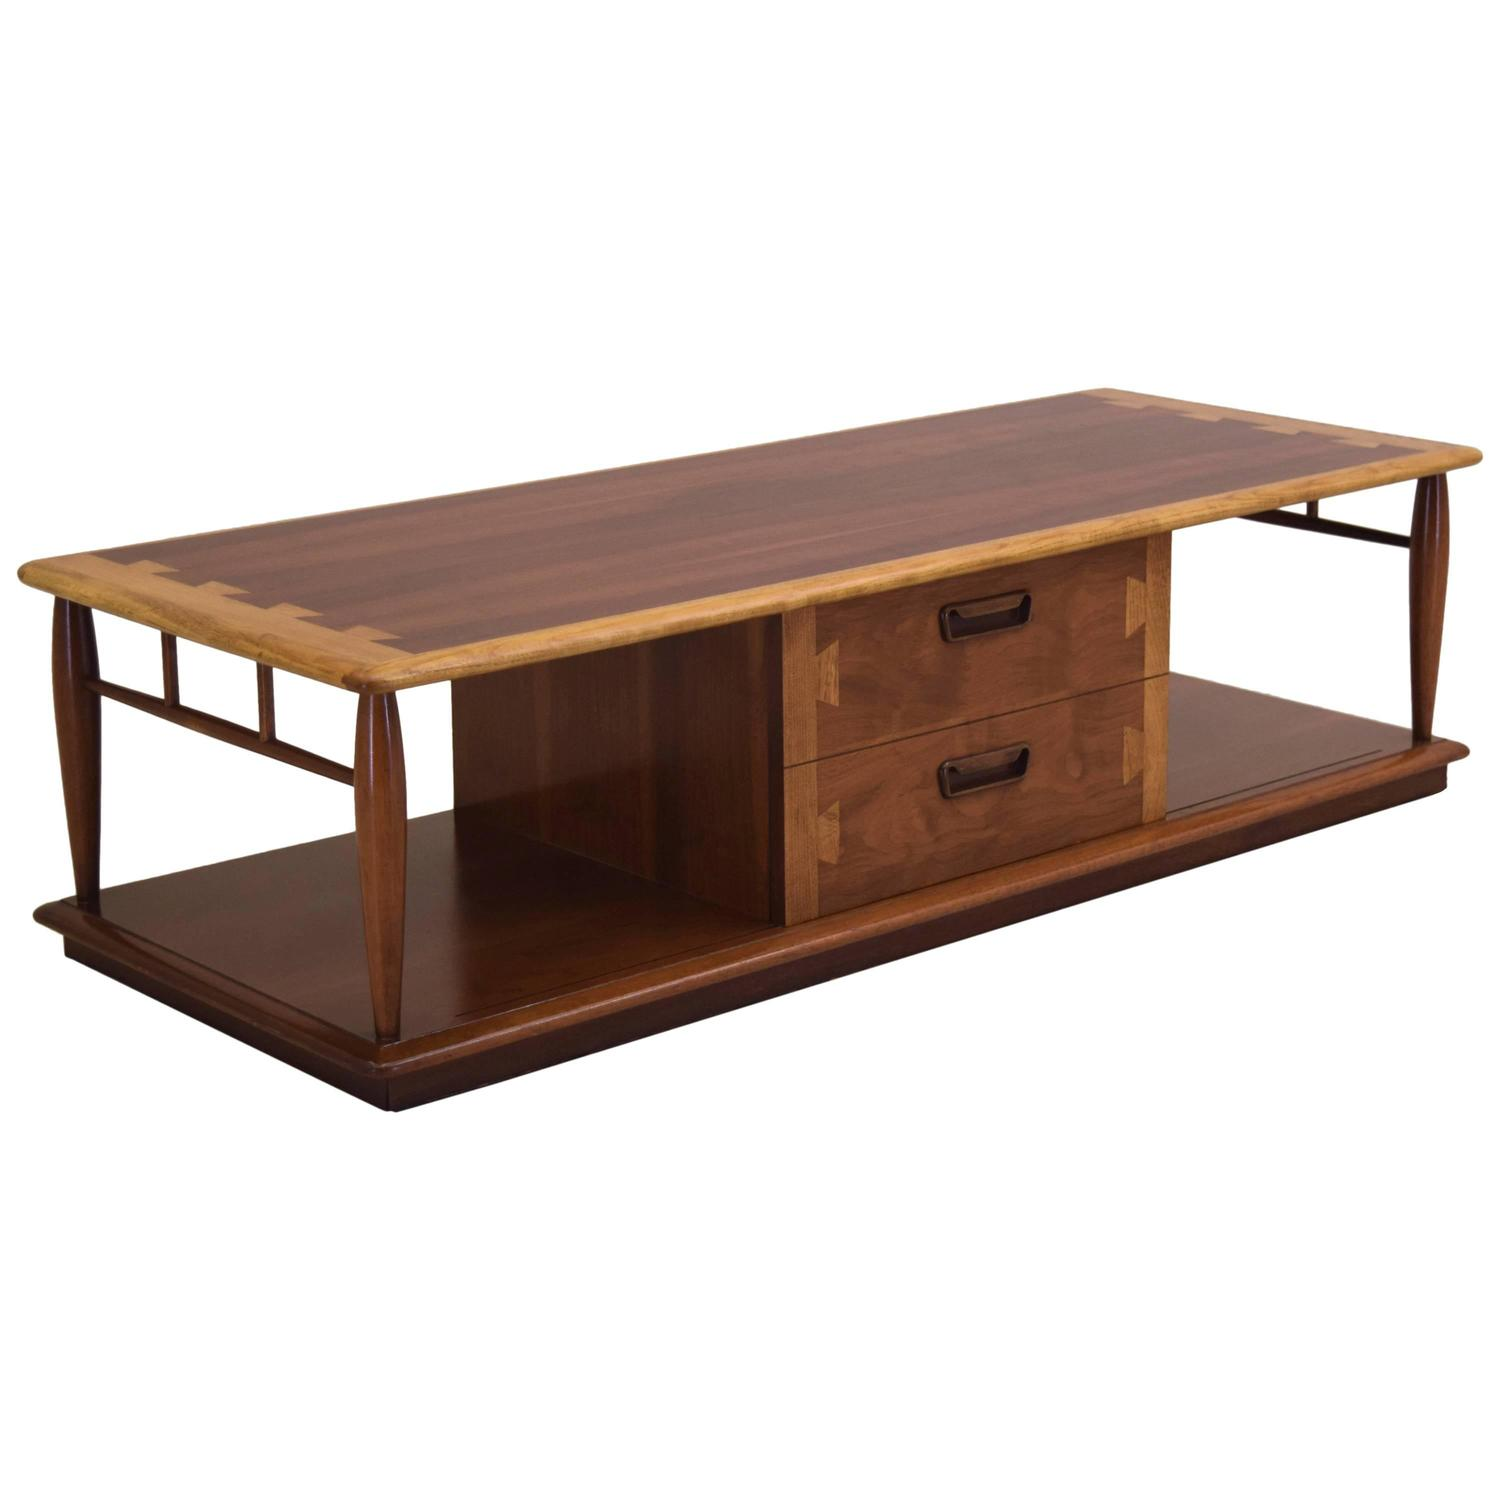 Lane Acclaim Coffee Table in Walnut and Oak with Storage at